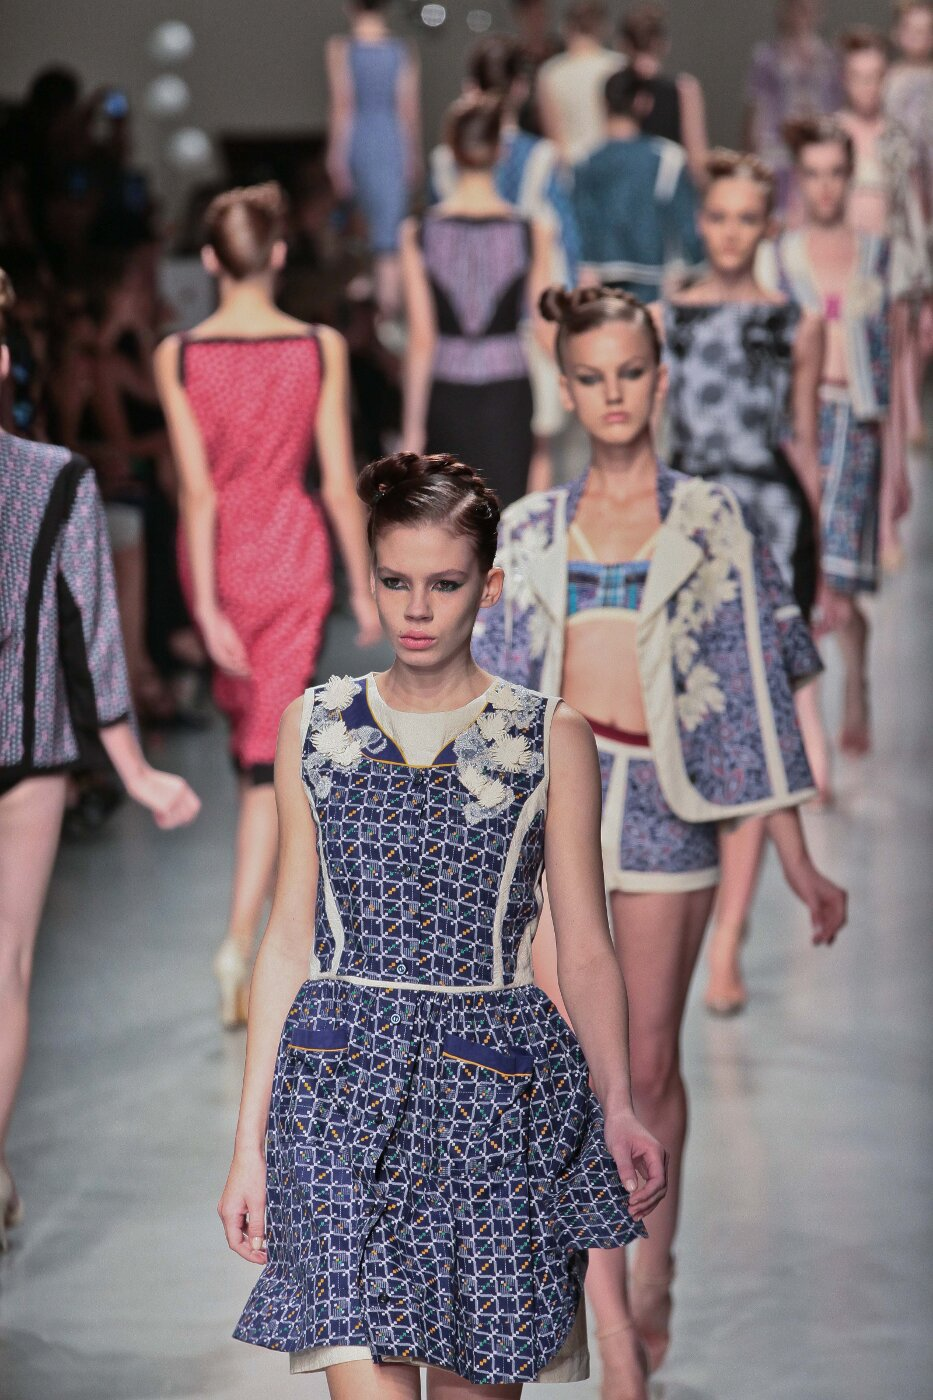 Antonio Marras SS 2012 Women